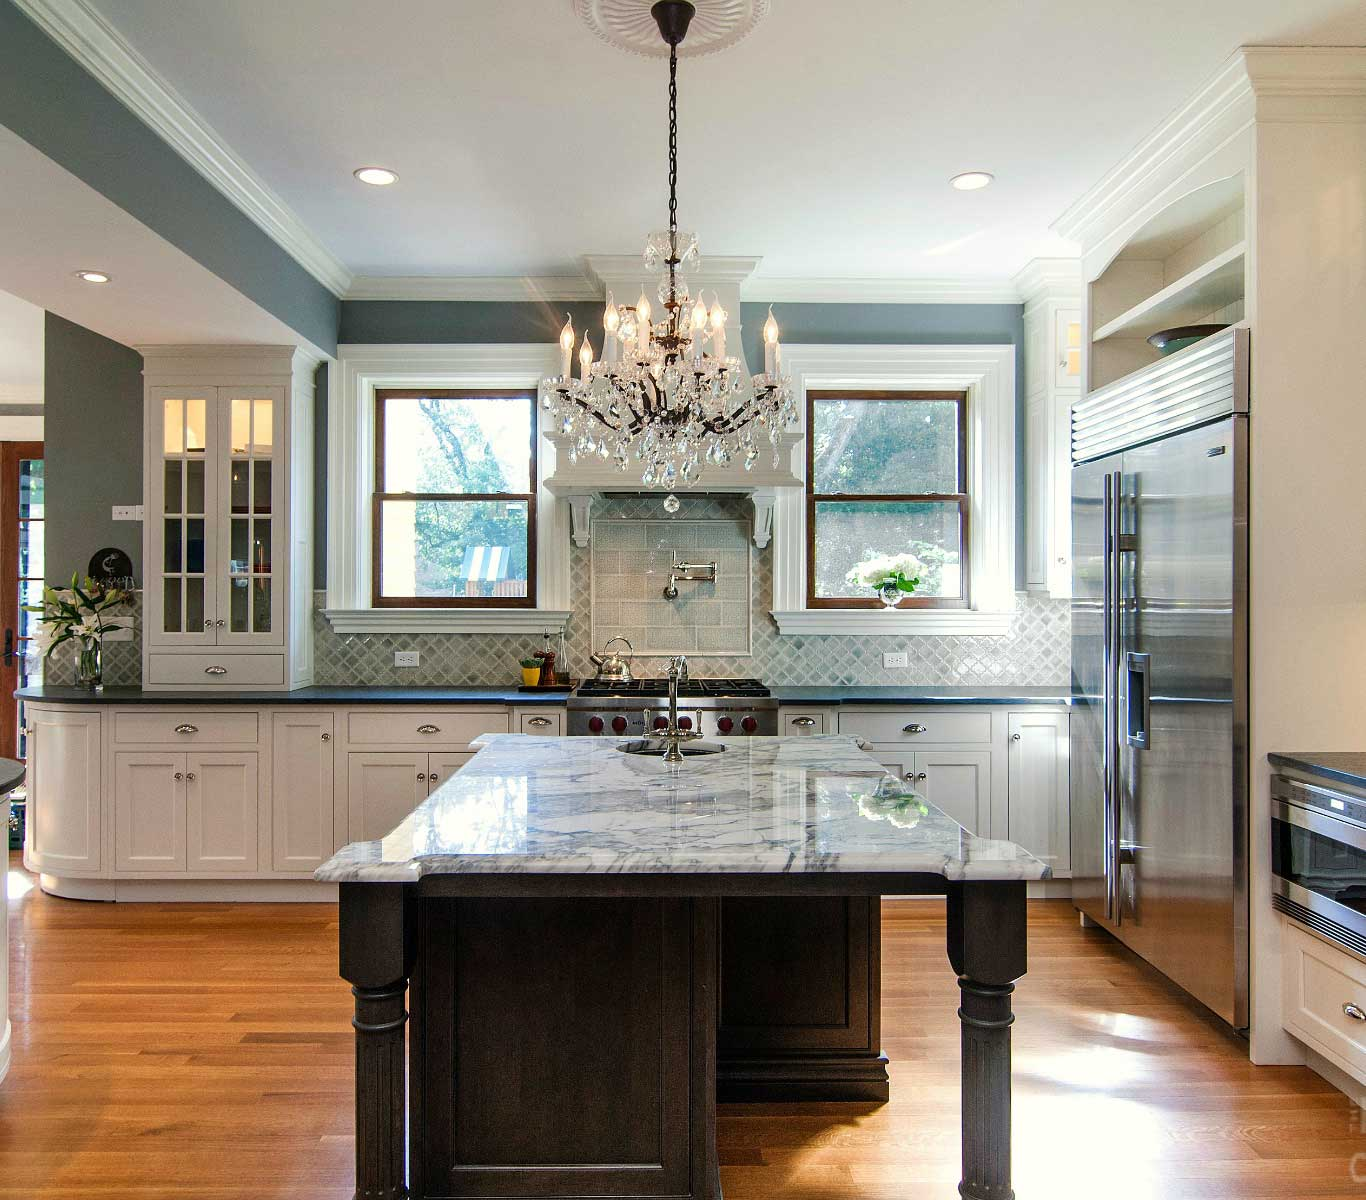 Kitchen with polished wooden flooring, center marble-top island with over-hanging crystal pendant light.